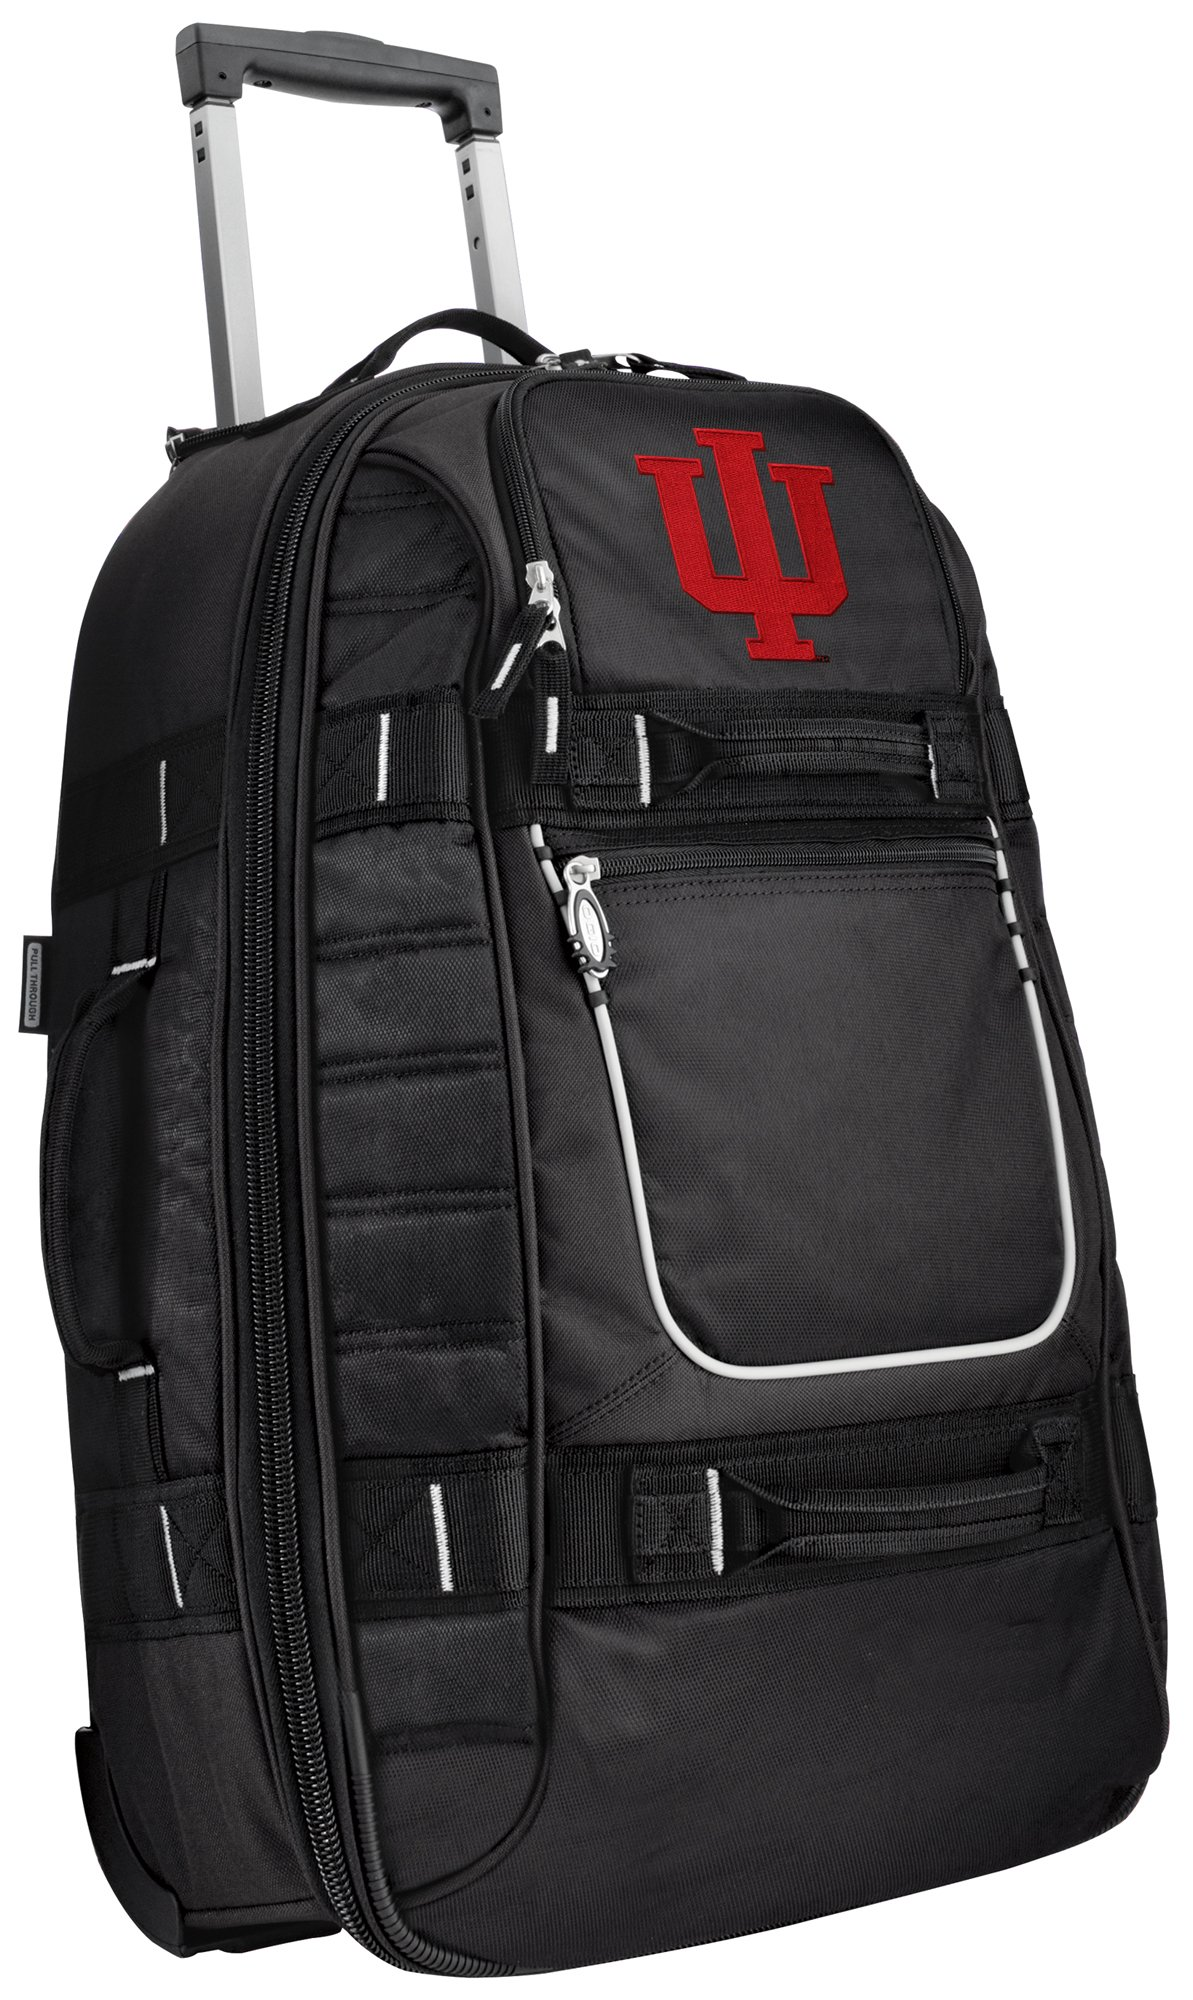 Small Indiana University Carry-On Bag Wheeled Suitcase Luggage Bags